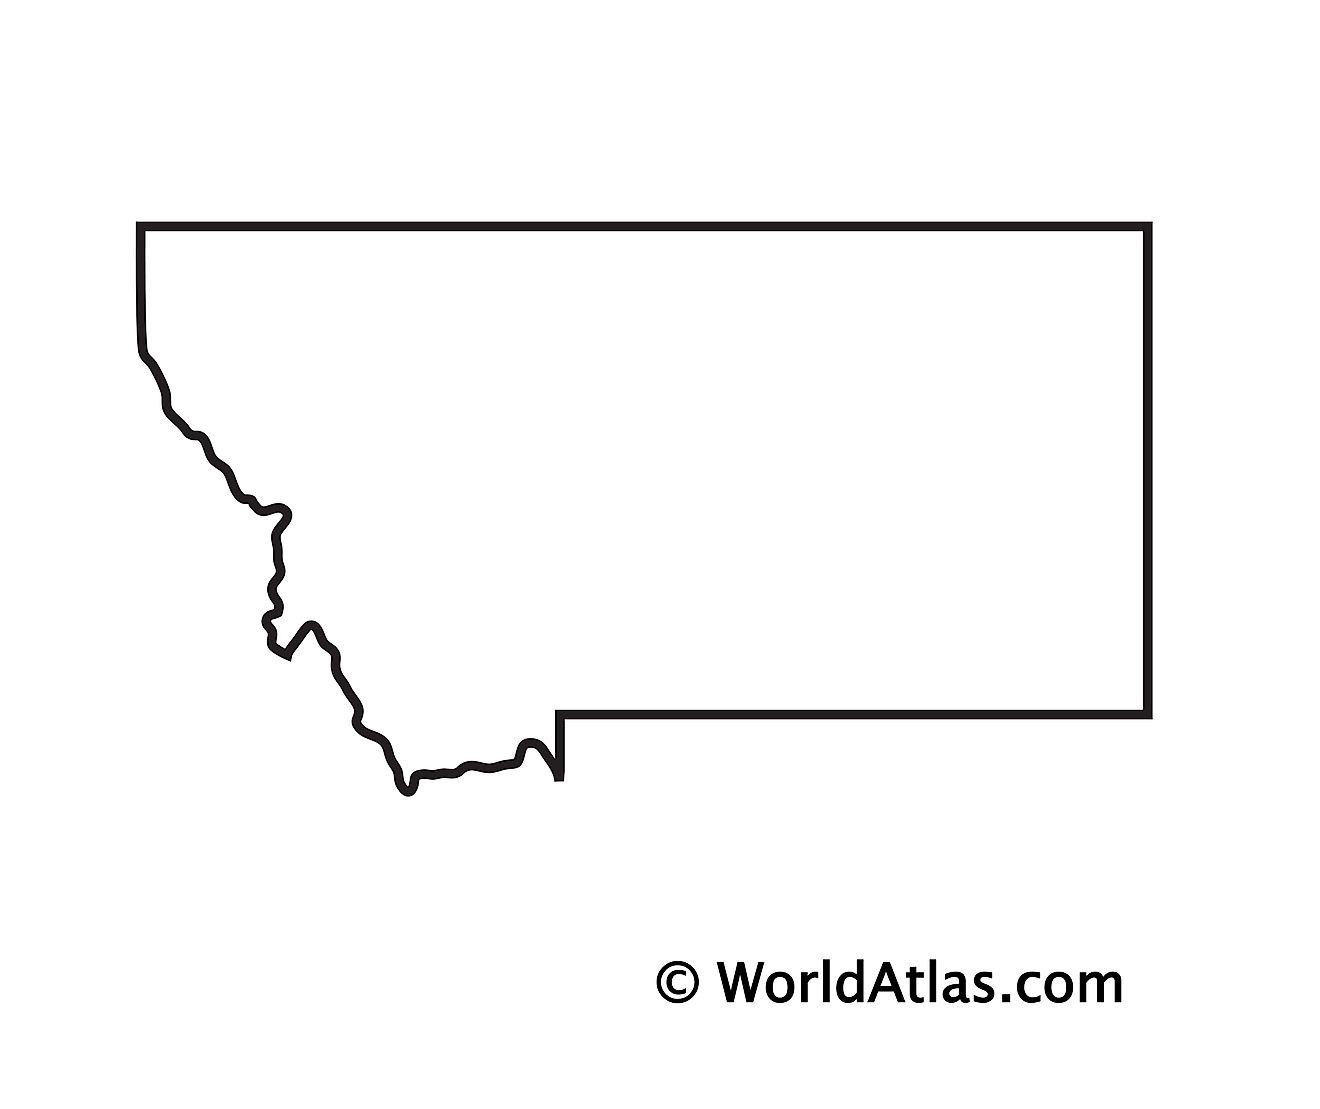 Blank Outline Map of Montana